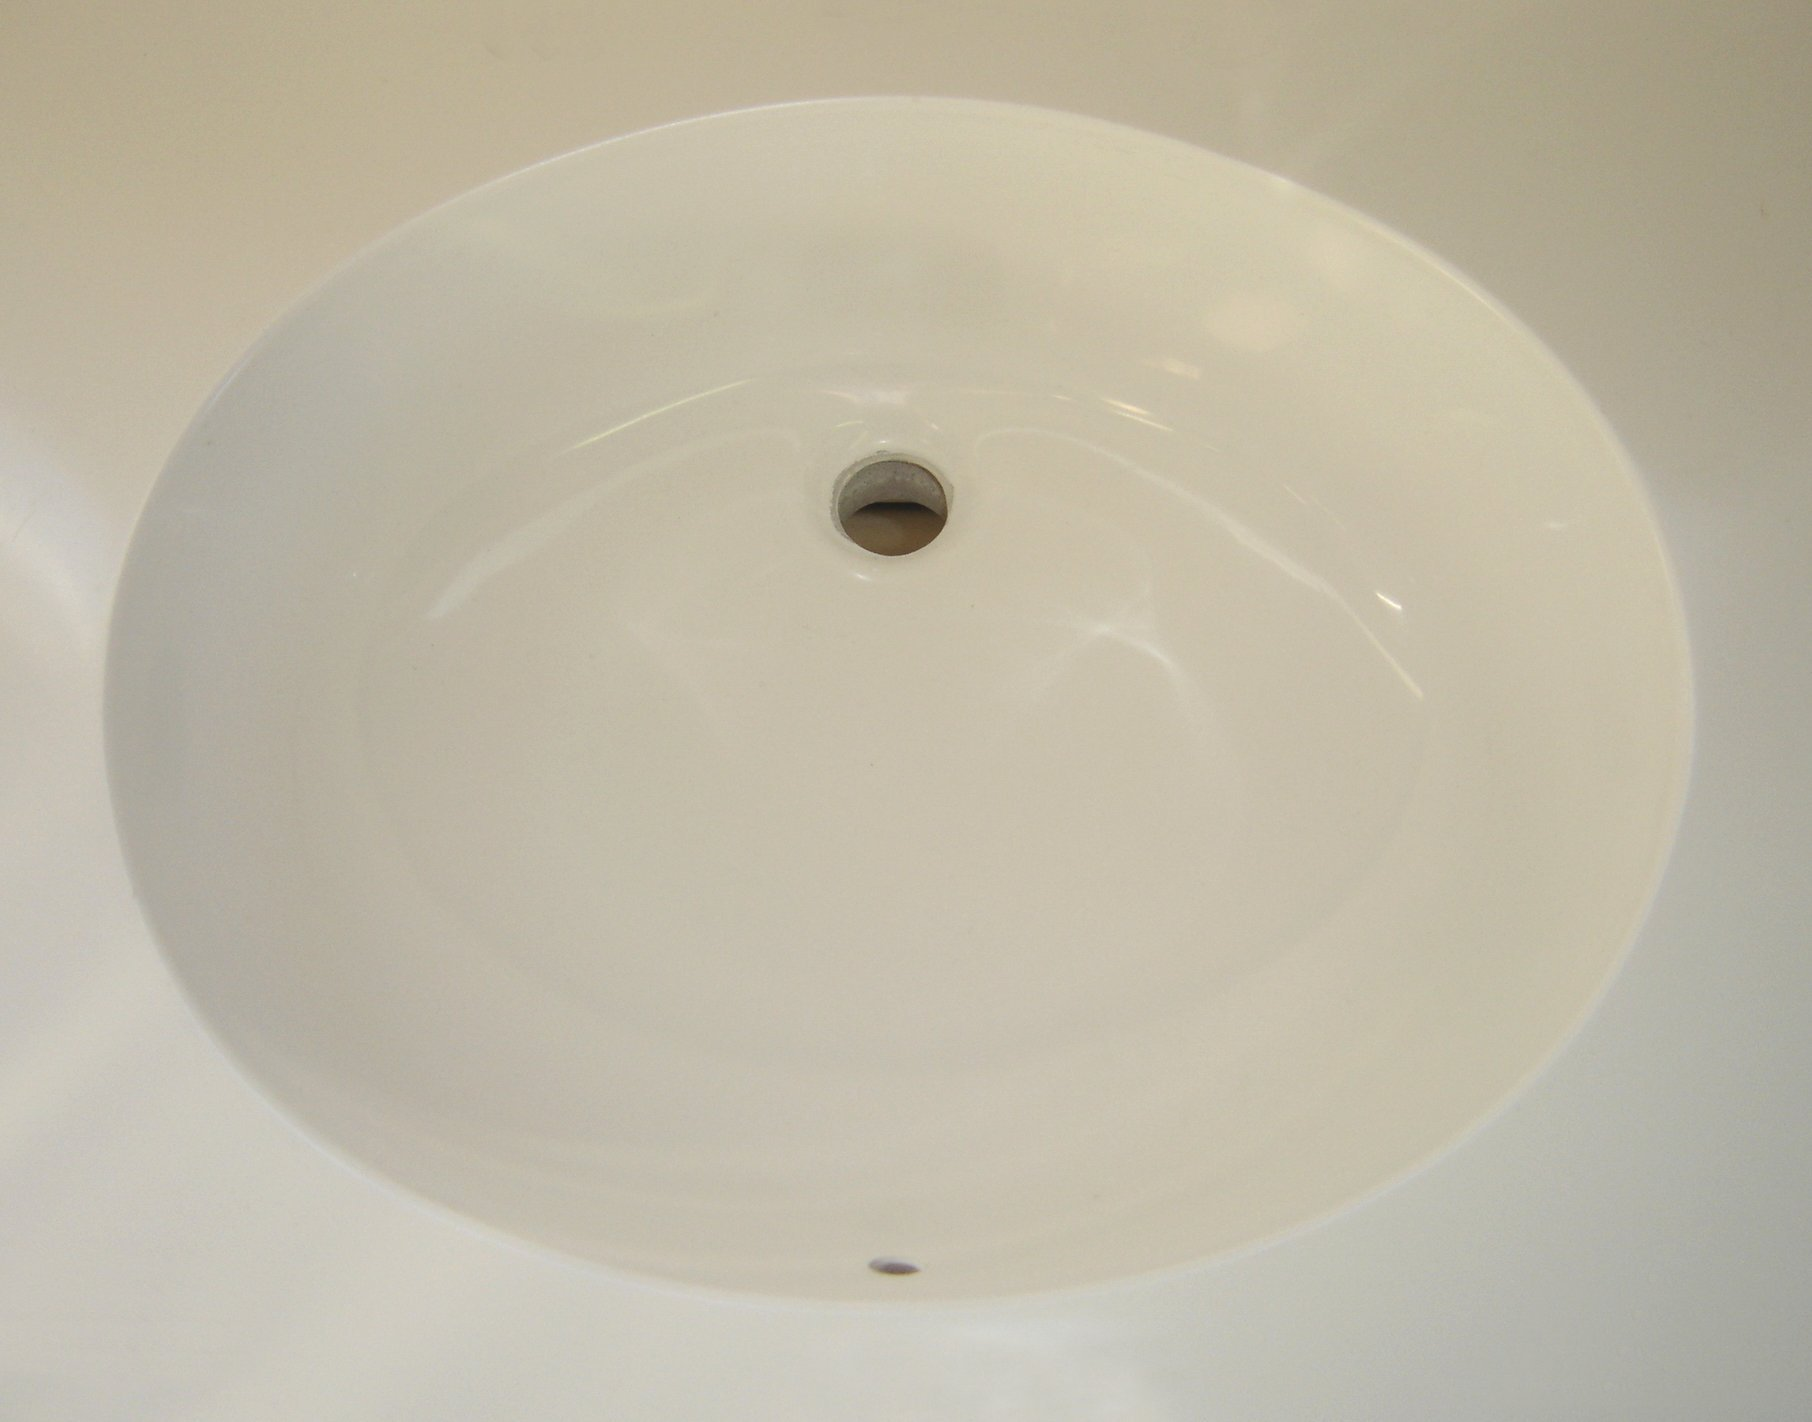 Custom oval sink